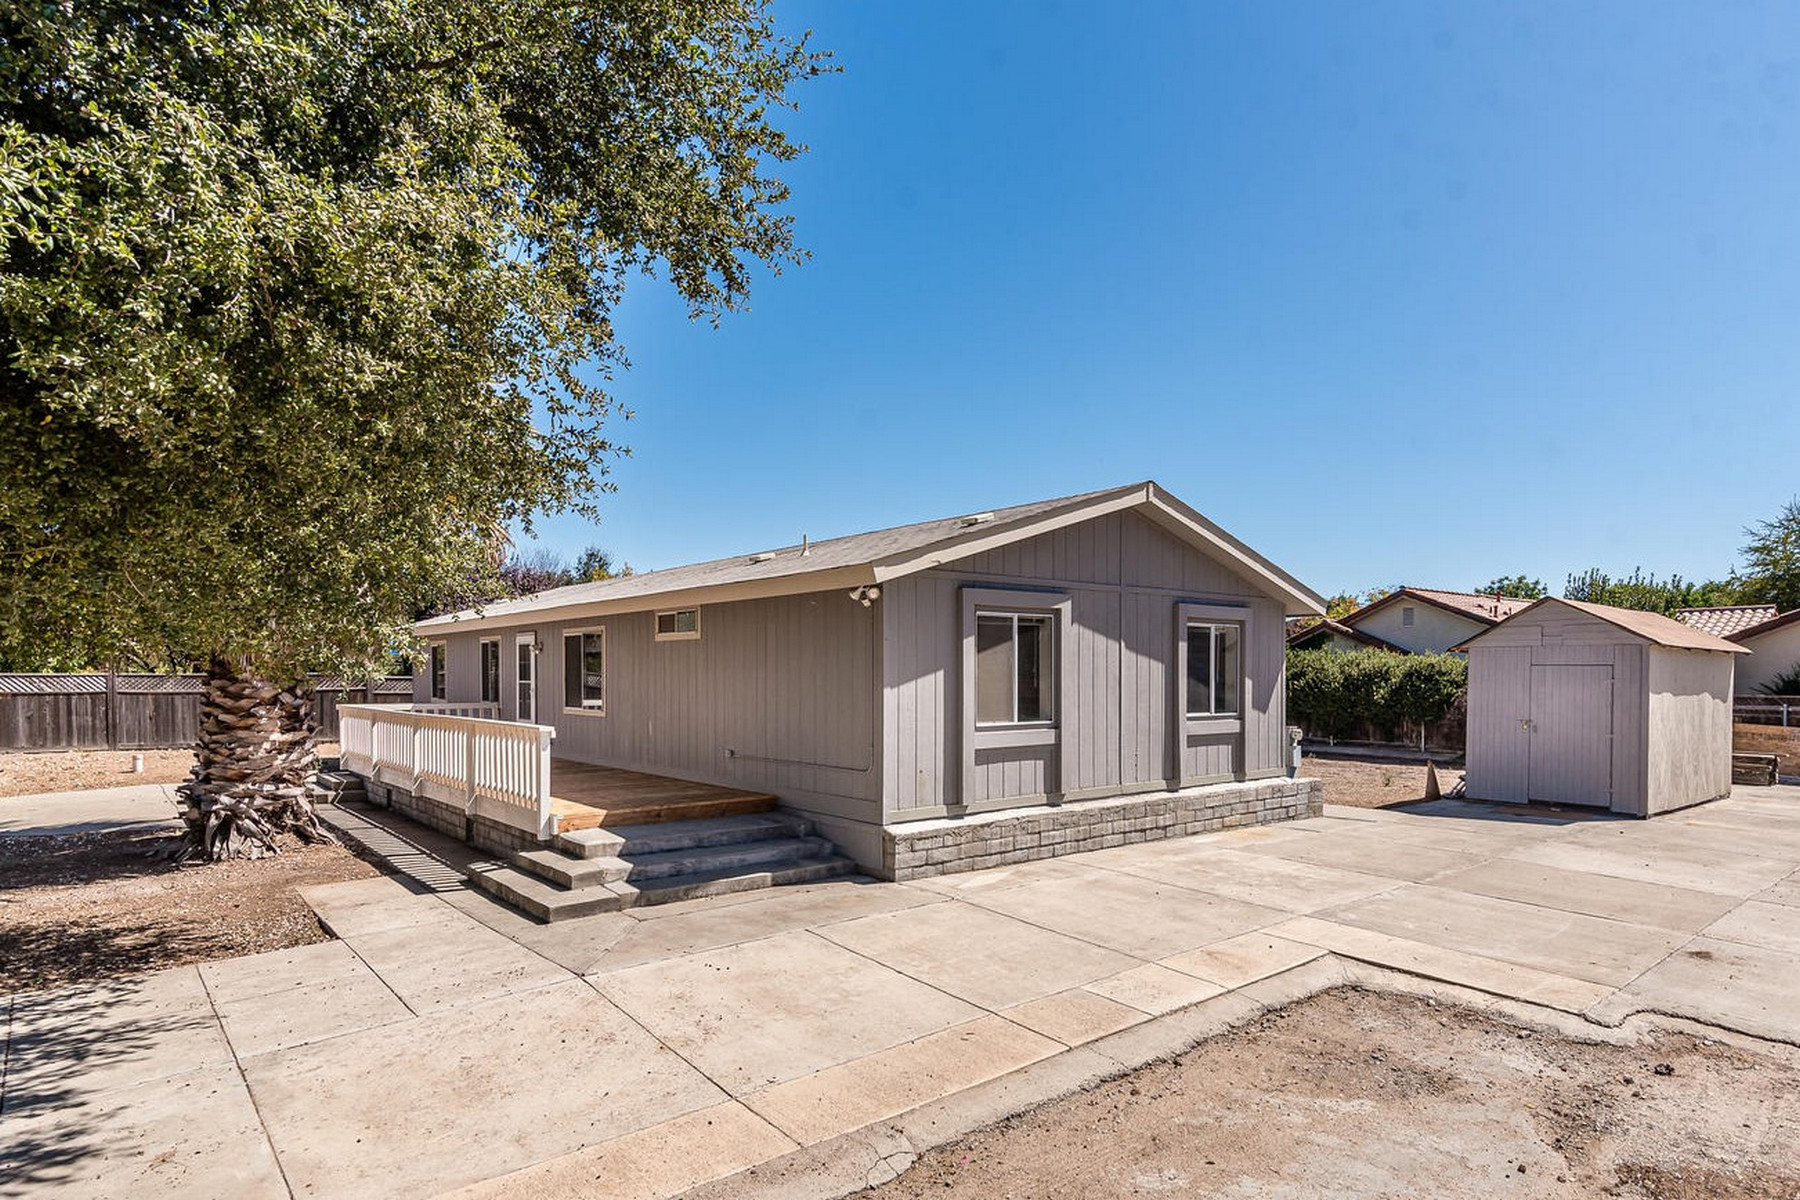 Single Family Homes for Sale at Move-in Ready Home on a Half Acre 5705 Carrizo Road Atascadero, California 93422 United States